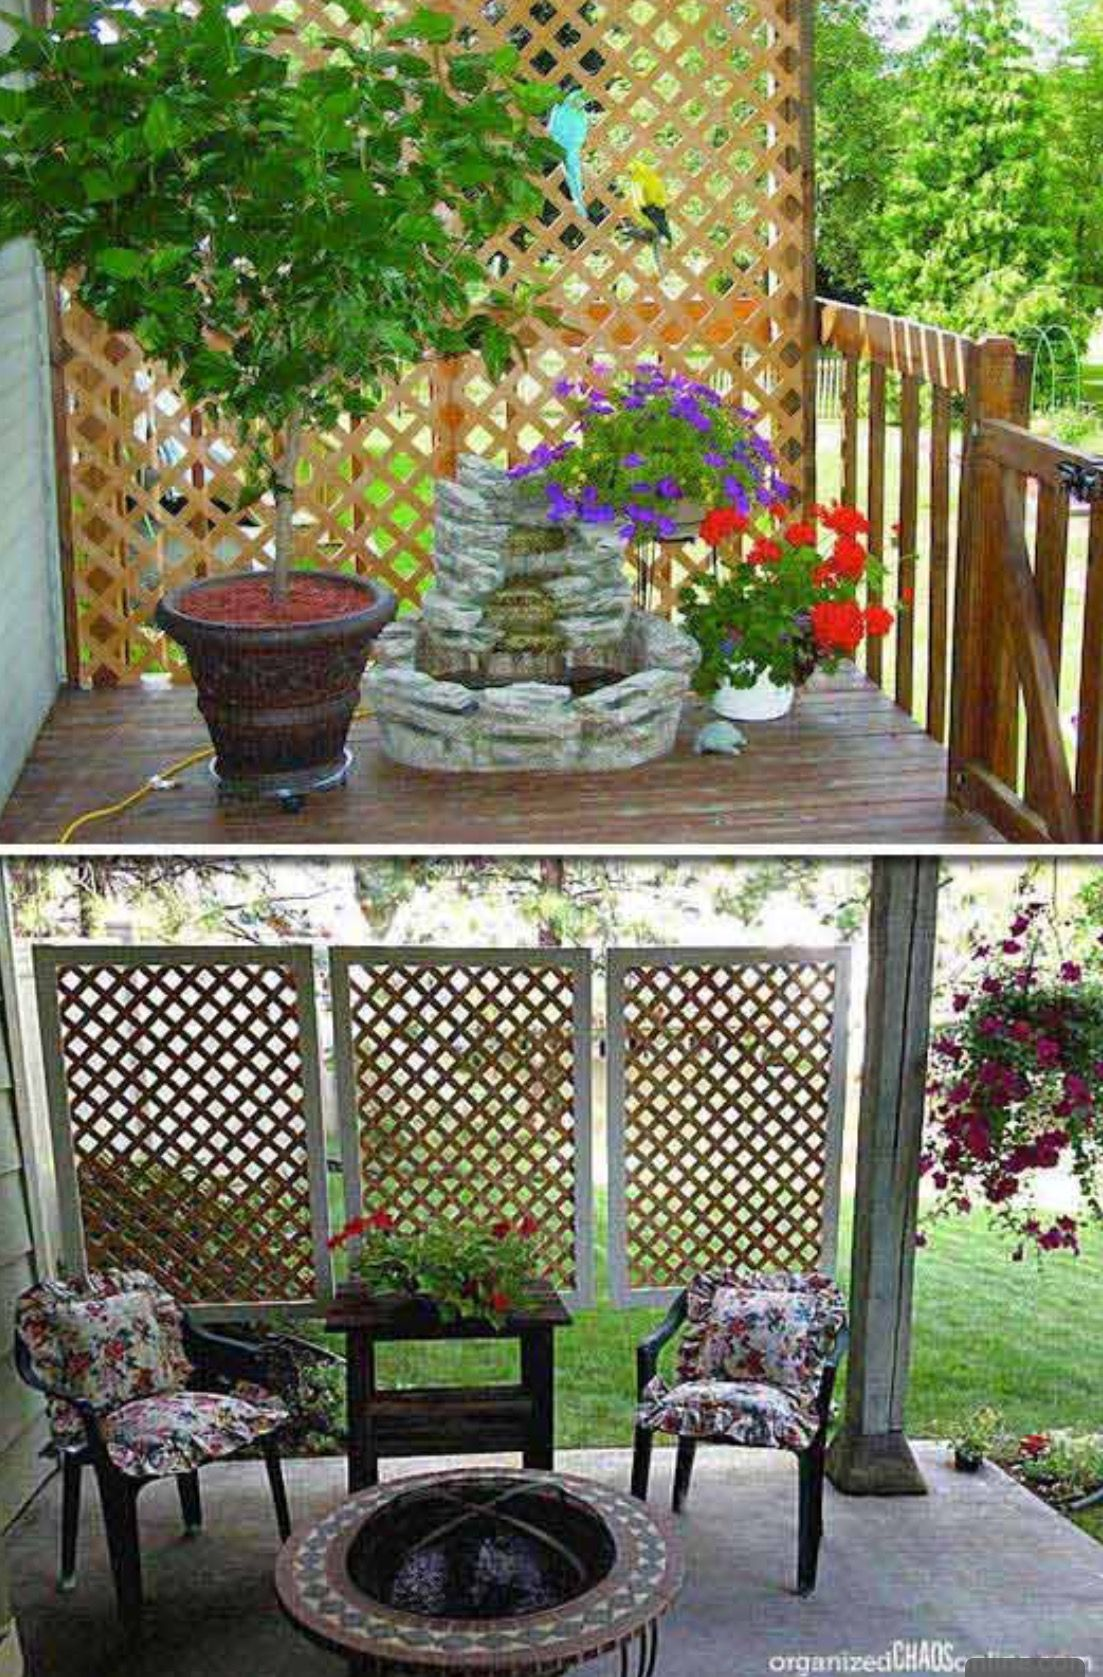 24 Low Cost Ways To Power Up Your Homes Curb Appeal: Pin By Lisa Duhon On Garden / Lanscape